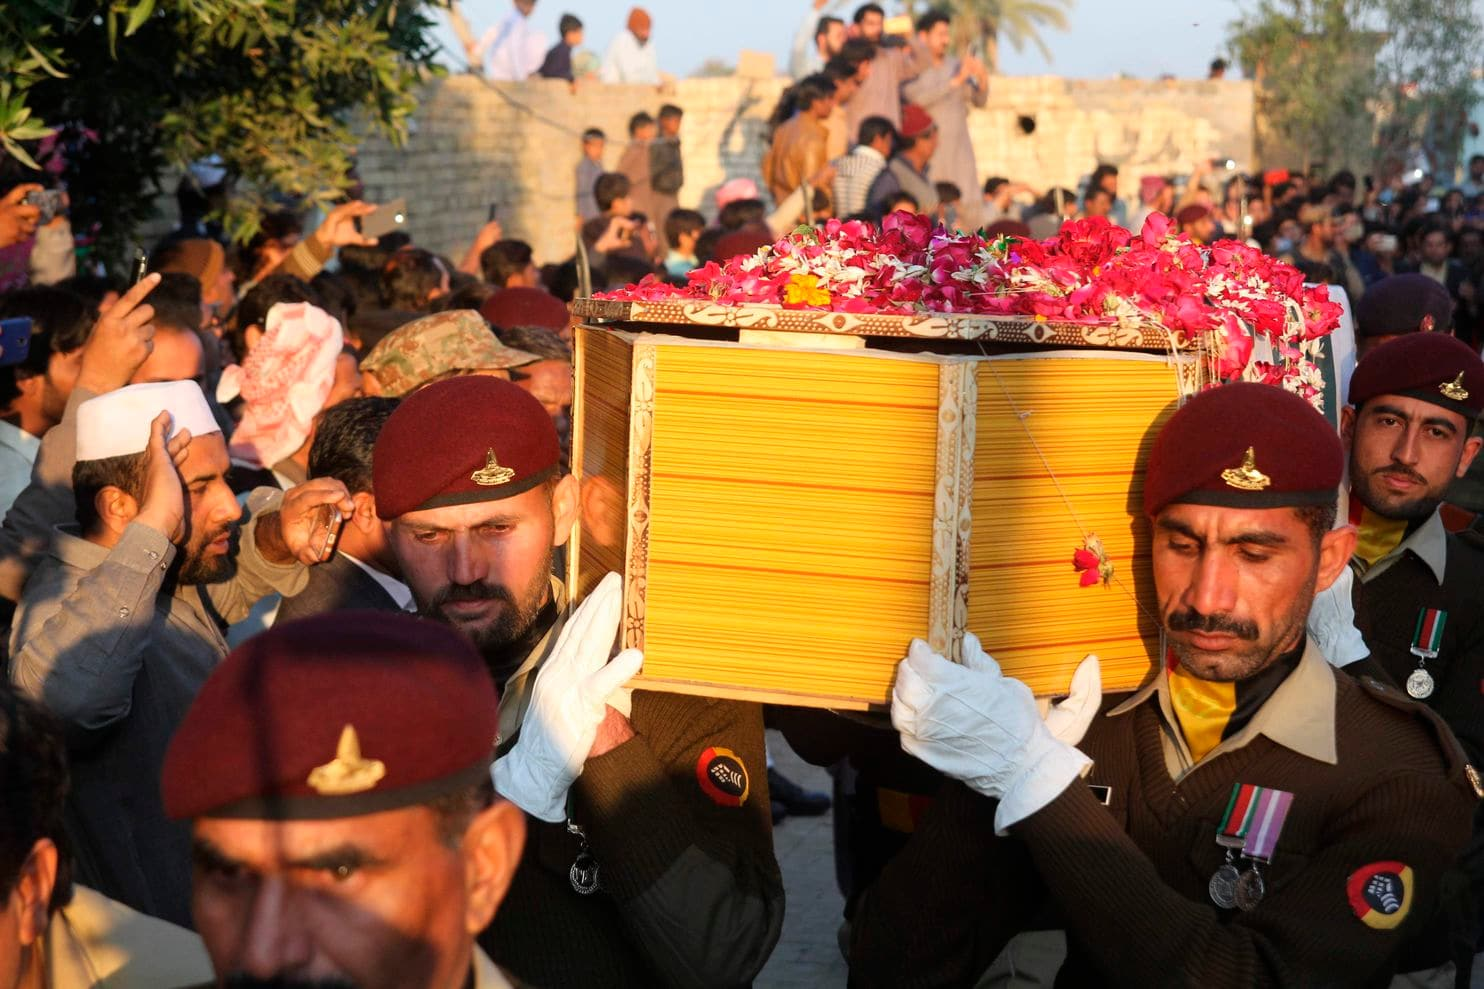 Are nuclear weapons keeping the India-Pakistan crisis from escalating — or making it more dangerous?